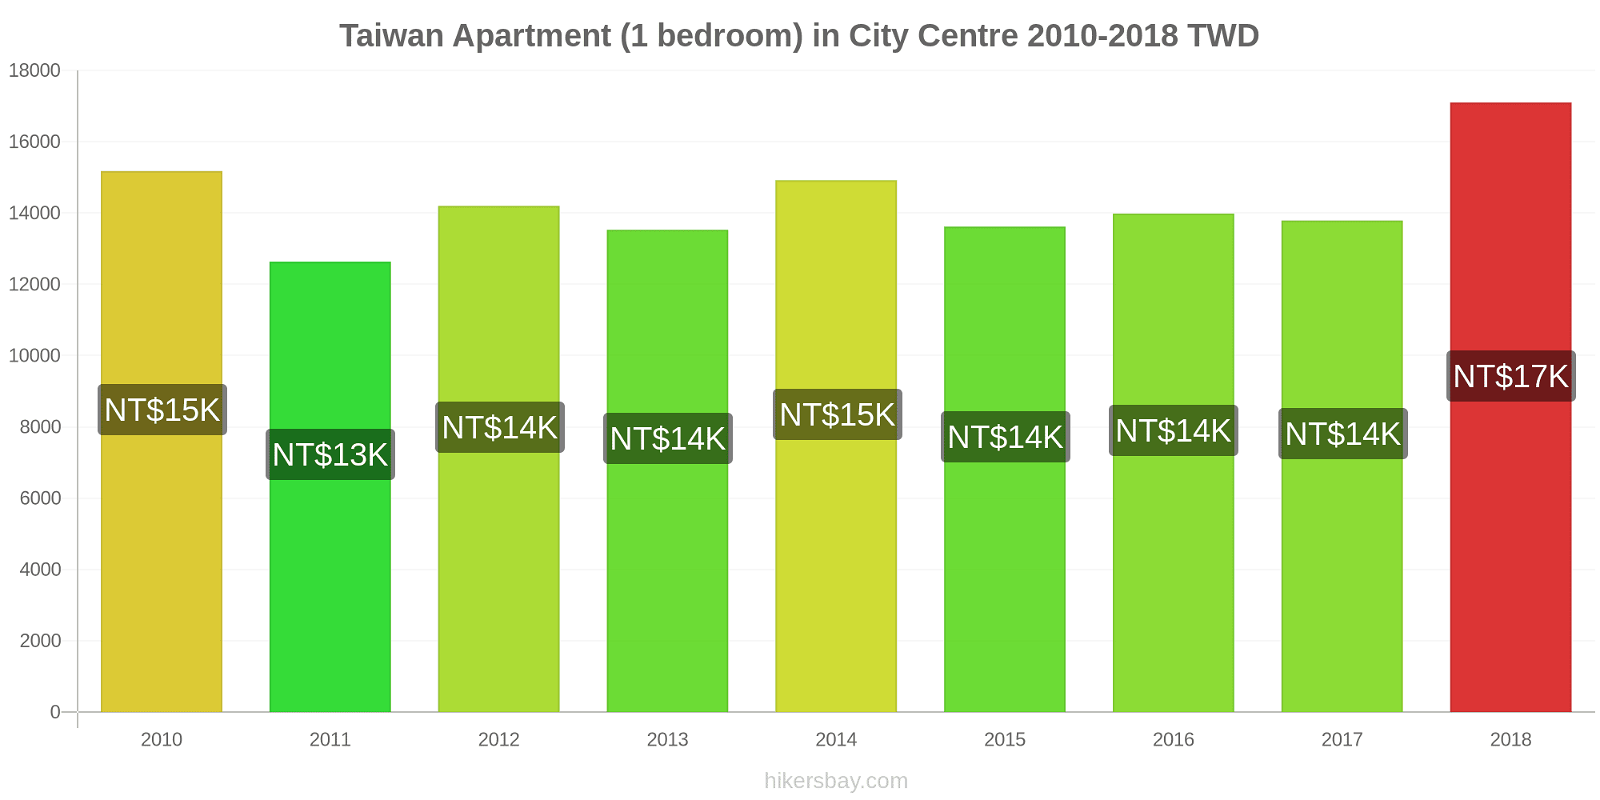 Taiwan price changes Apartment (1 bedroom) in City Centre hikersbay.com